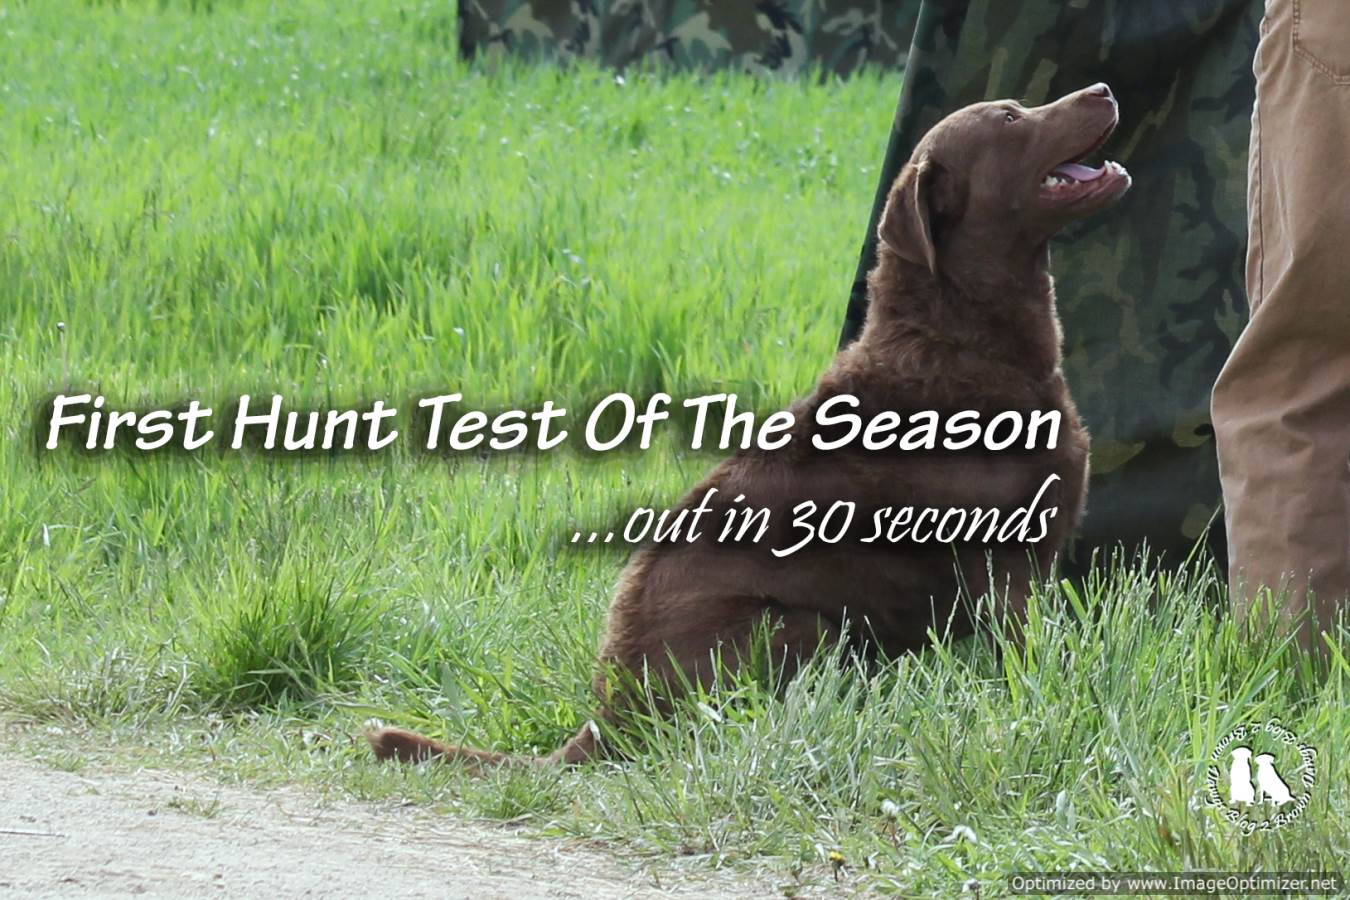 First Hunt Test Of The Season Over In 30 Seconds